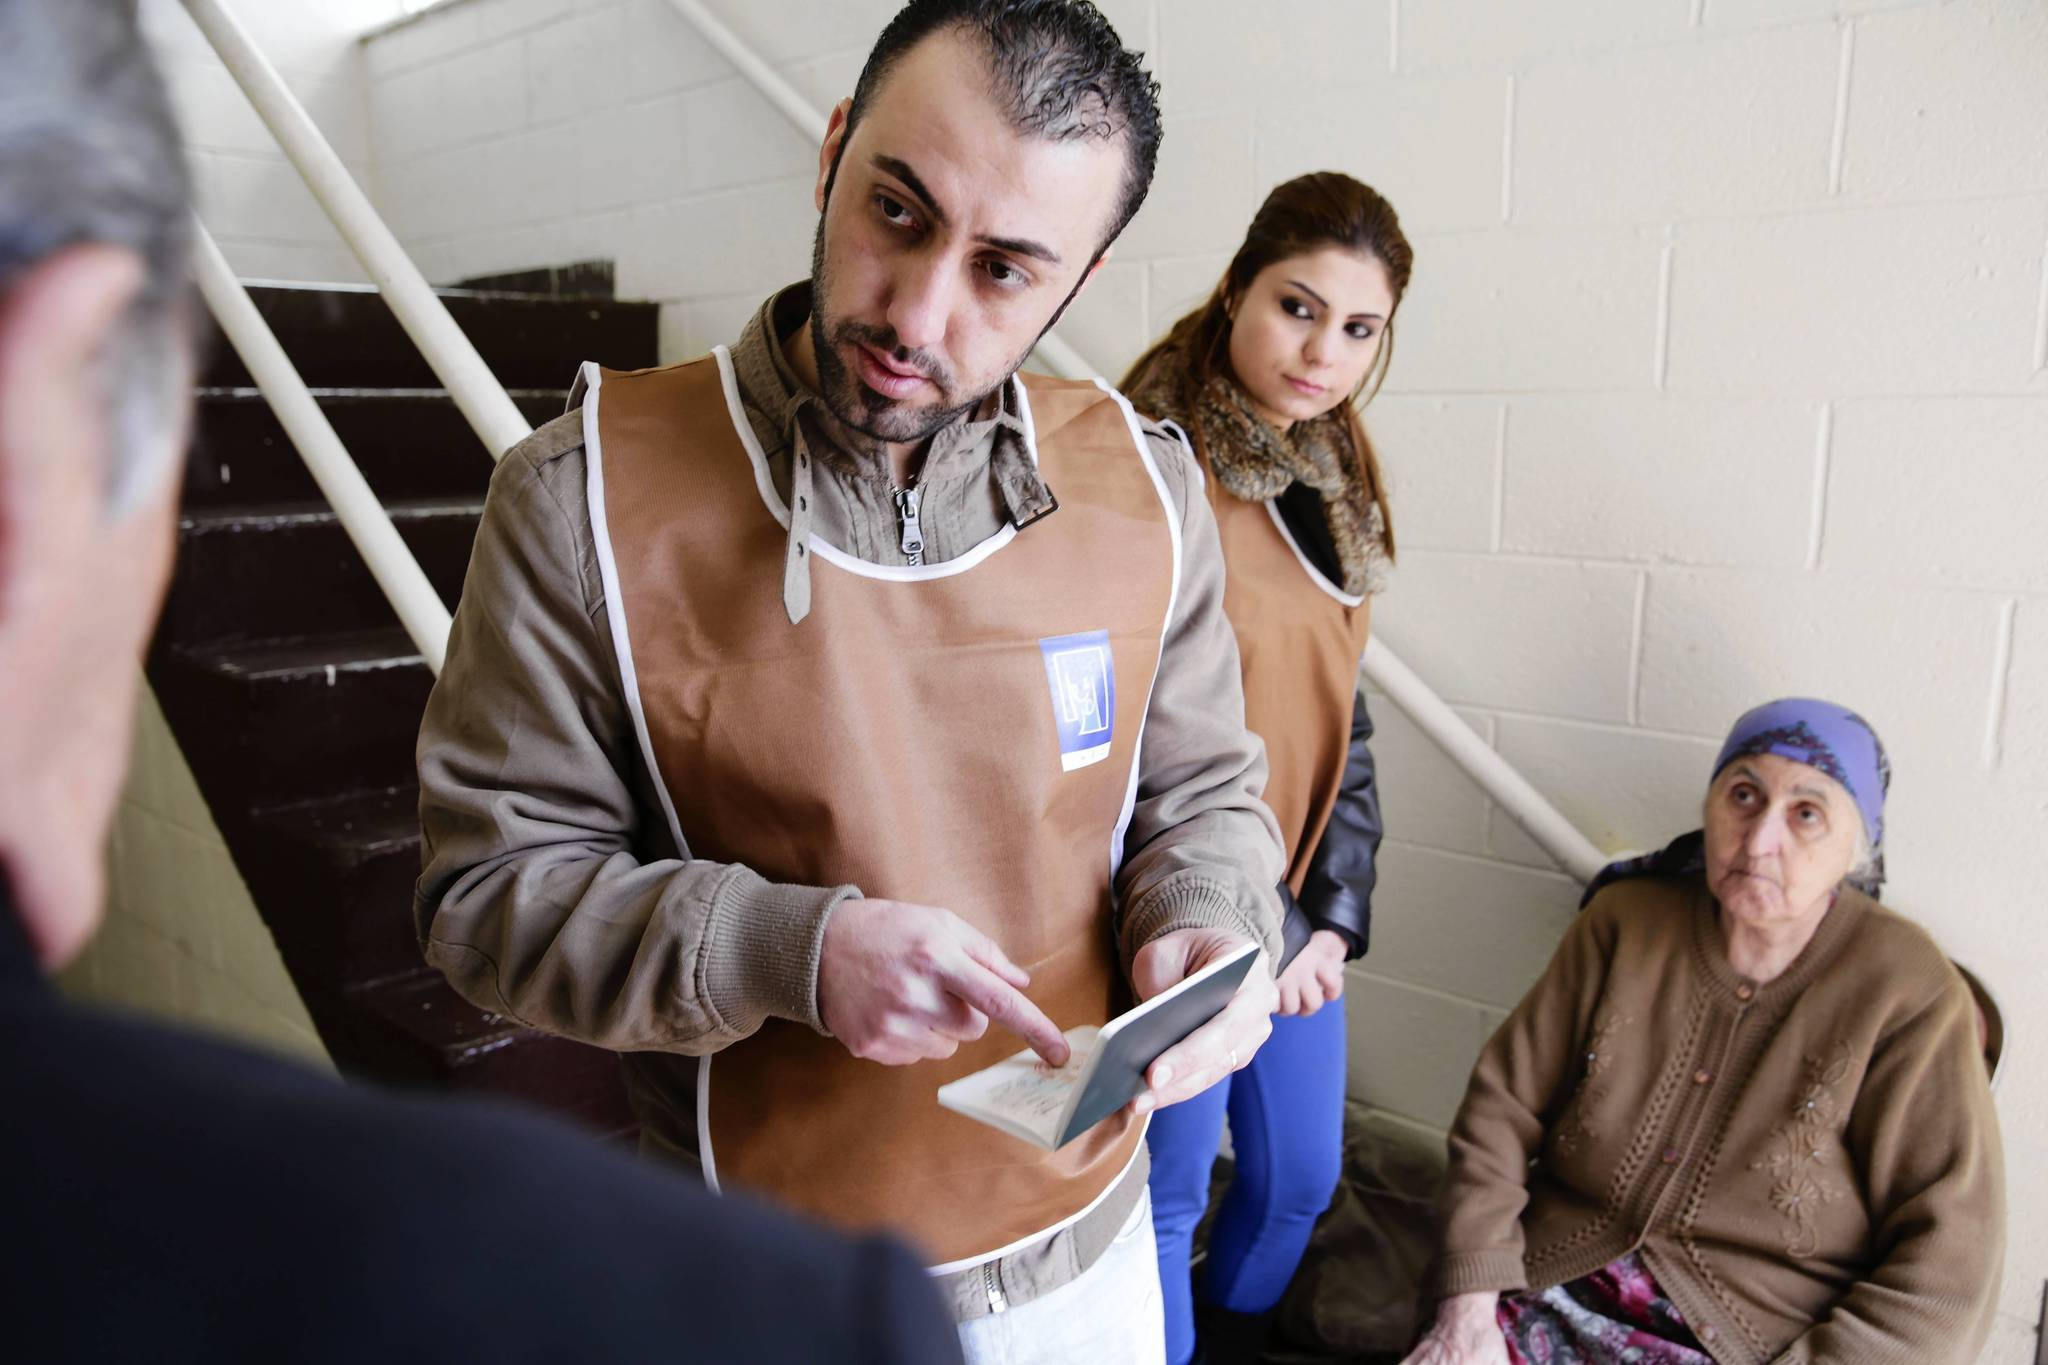 Election worker Robert Yohanna, 2nd from left, checks the IDs of Iraqi citizens wishing to vote in the Assyrian National Council of Illinois in Skokie. Iraqis will vote for governors and members of parliament.